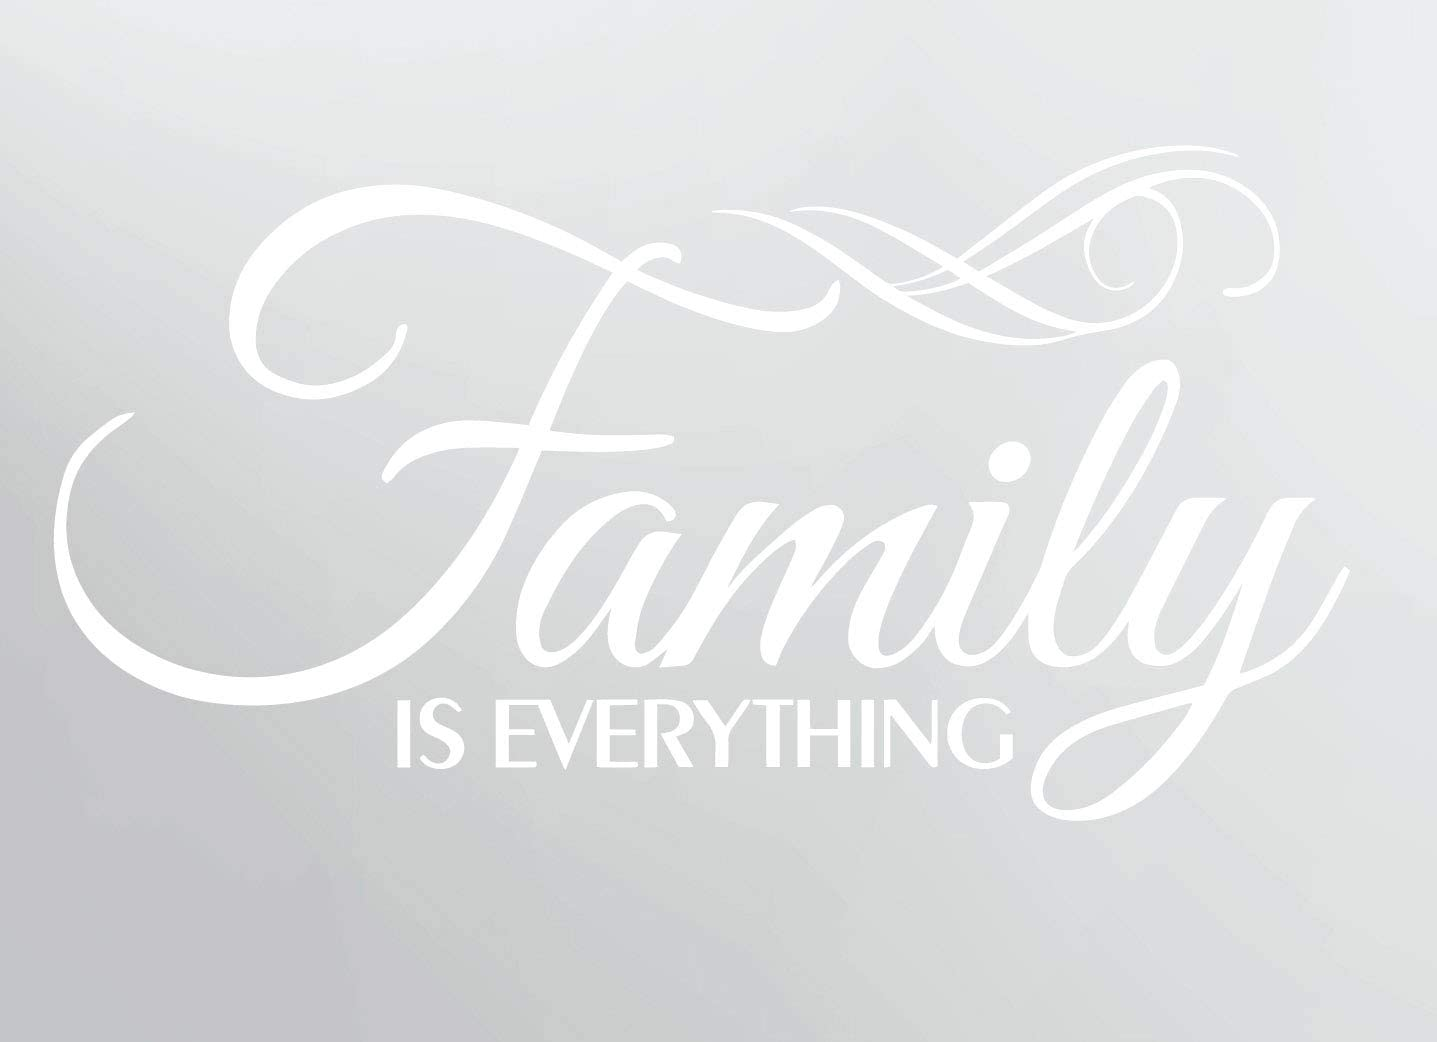 Family is Everything Wall Decor Decal Quote Word Vinyl Sticker Family Decals for Wall Room Art Decoration #3071 (Matte White)